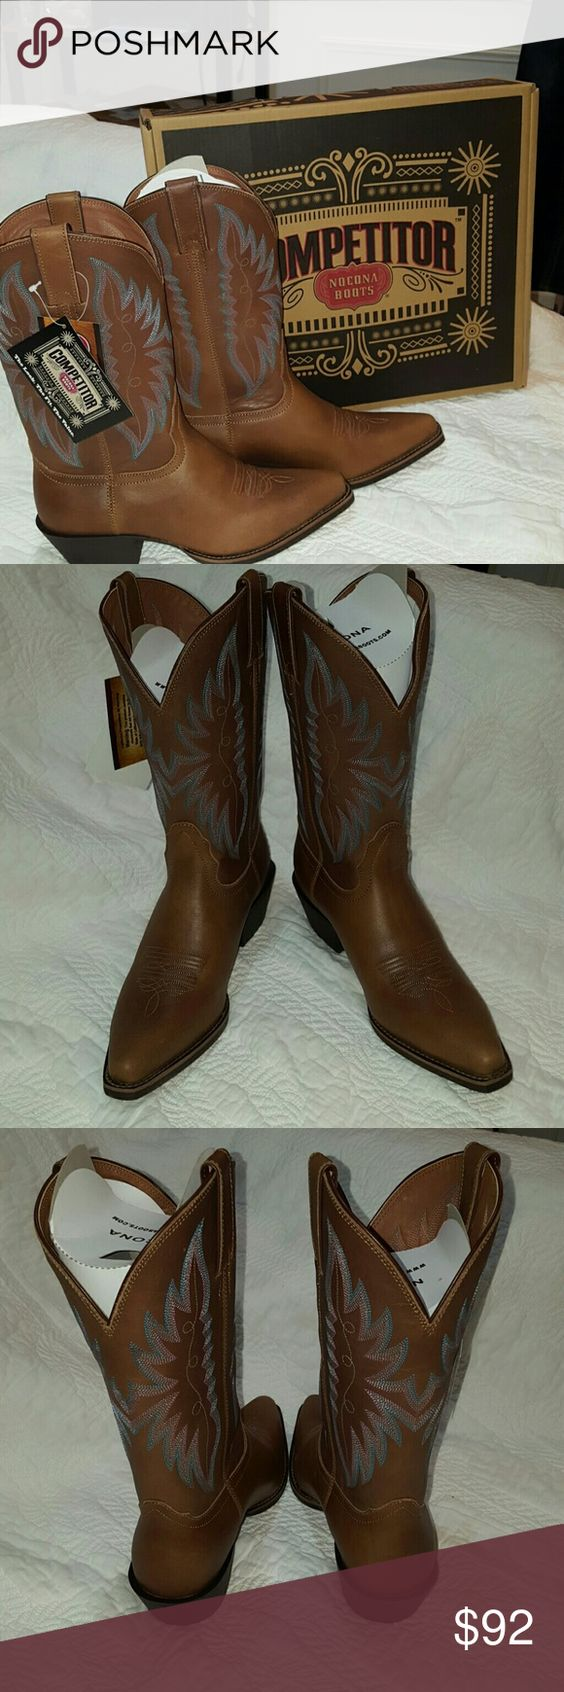 NOCONA COMPETITOR BROWN LEATHER COWBOY BOOTS 6.5 For sale is a women's pair of western cowboy boots from the Justin Boot Barn. The style name of the boot is The Competitor. The Style number is NL1115. The boot has a leather upper inside and out.These boots are brand new with tags, box and all packing. There is a winged or feathered pattern on the upper area of the boot and stitching on the vamp for added style as well. The outsole is durable yet flexible. The size is a generous  6.5B. So if…